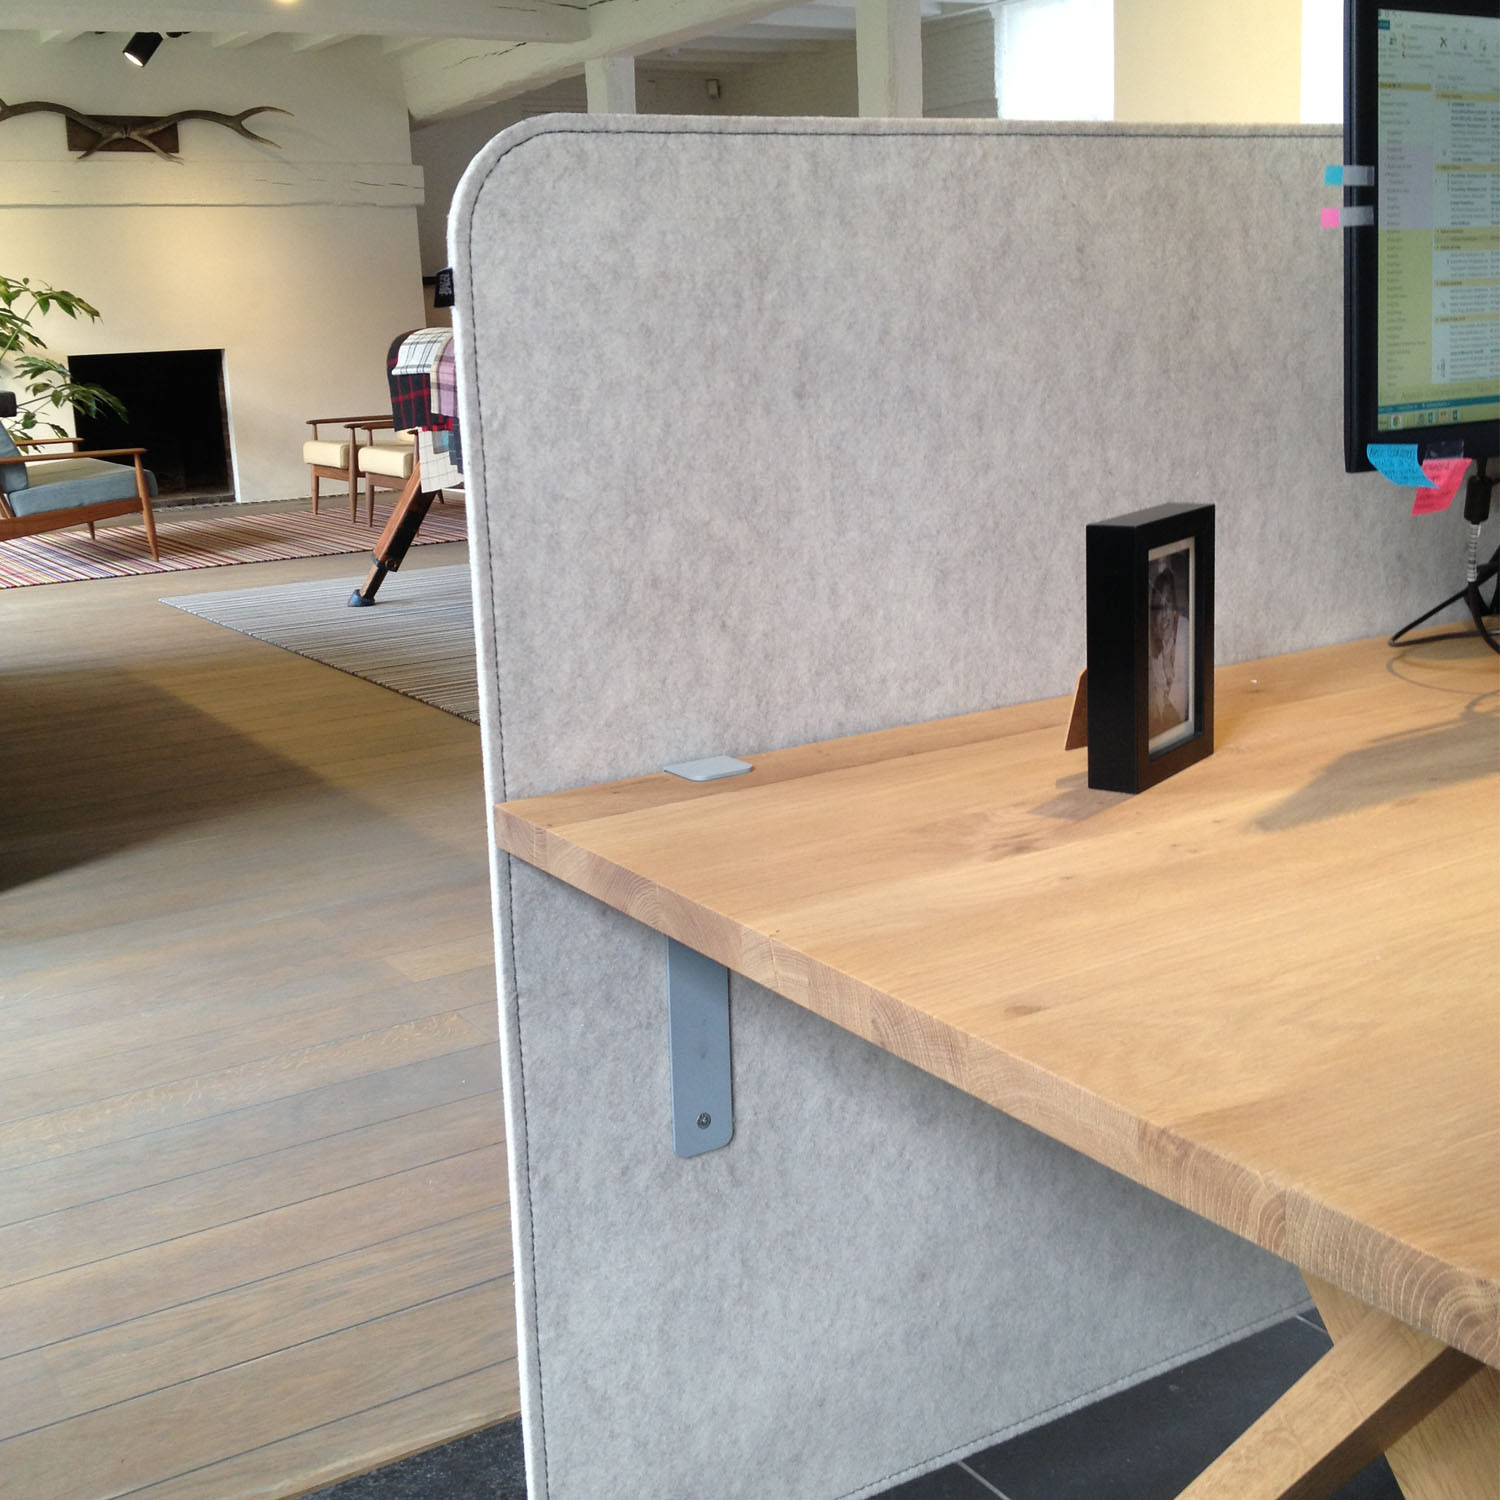 uk home office phone number with Buzzi Frontdesk Divider on  besides 56d12791221e53d2b88b4573 further Alcatel 4004 First Reflexes Set Int 3ak27101 likewise Buzzi Frontdesk Divider as well Phone.